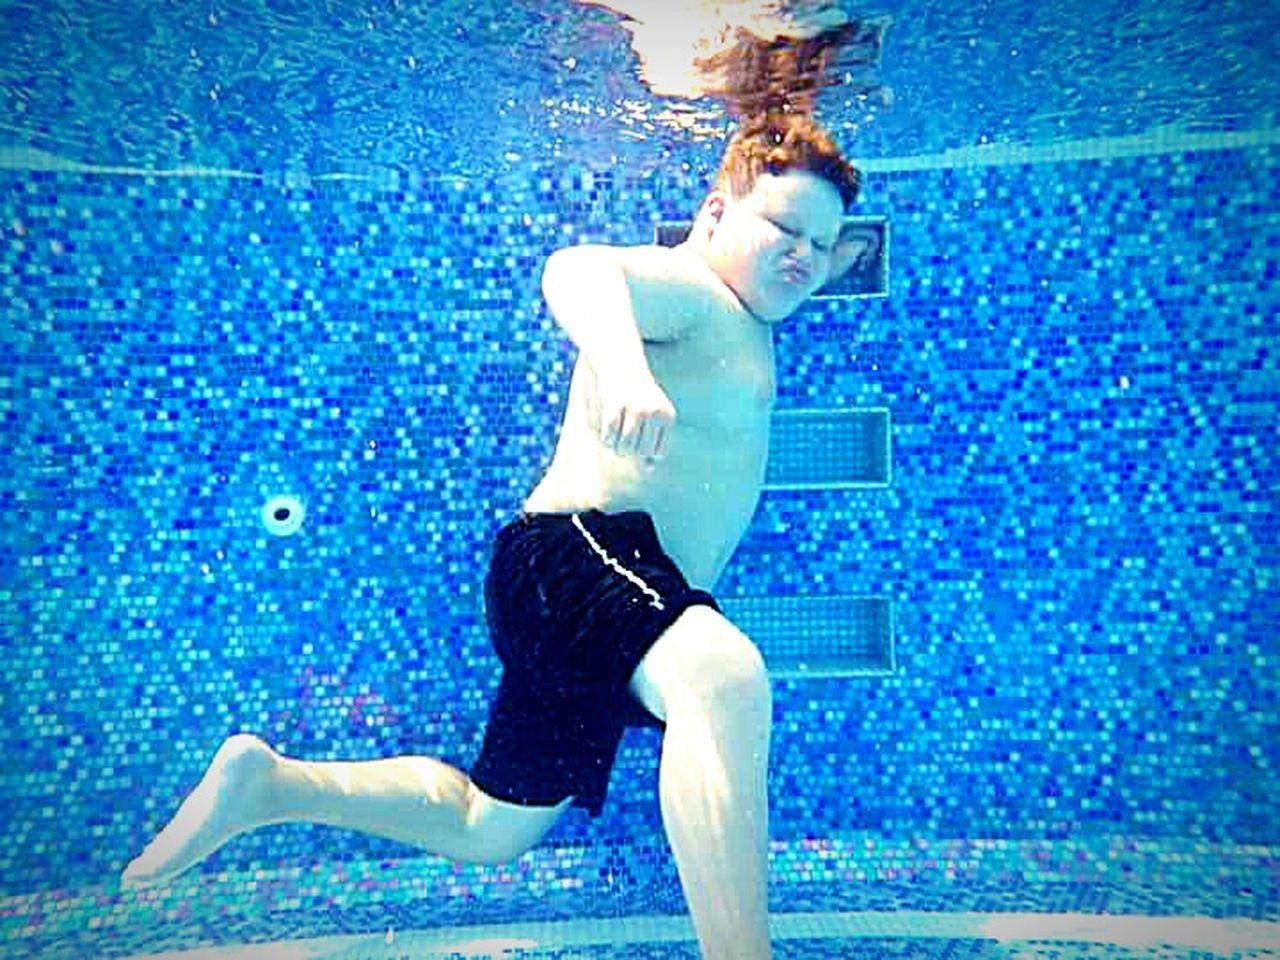 The Essence Of Summer Kid Photography Children Photography Kids Being Kids Swimming Pool Swimming Time My Son ❤ Swimming My Photography Taking Photos ❤ Water Photography Waterproof Camera Underwater Photography Swimming Underwater Underwater Life